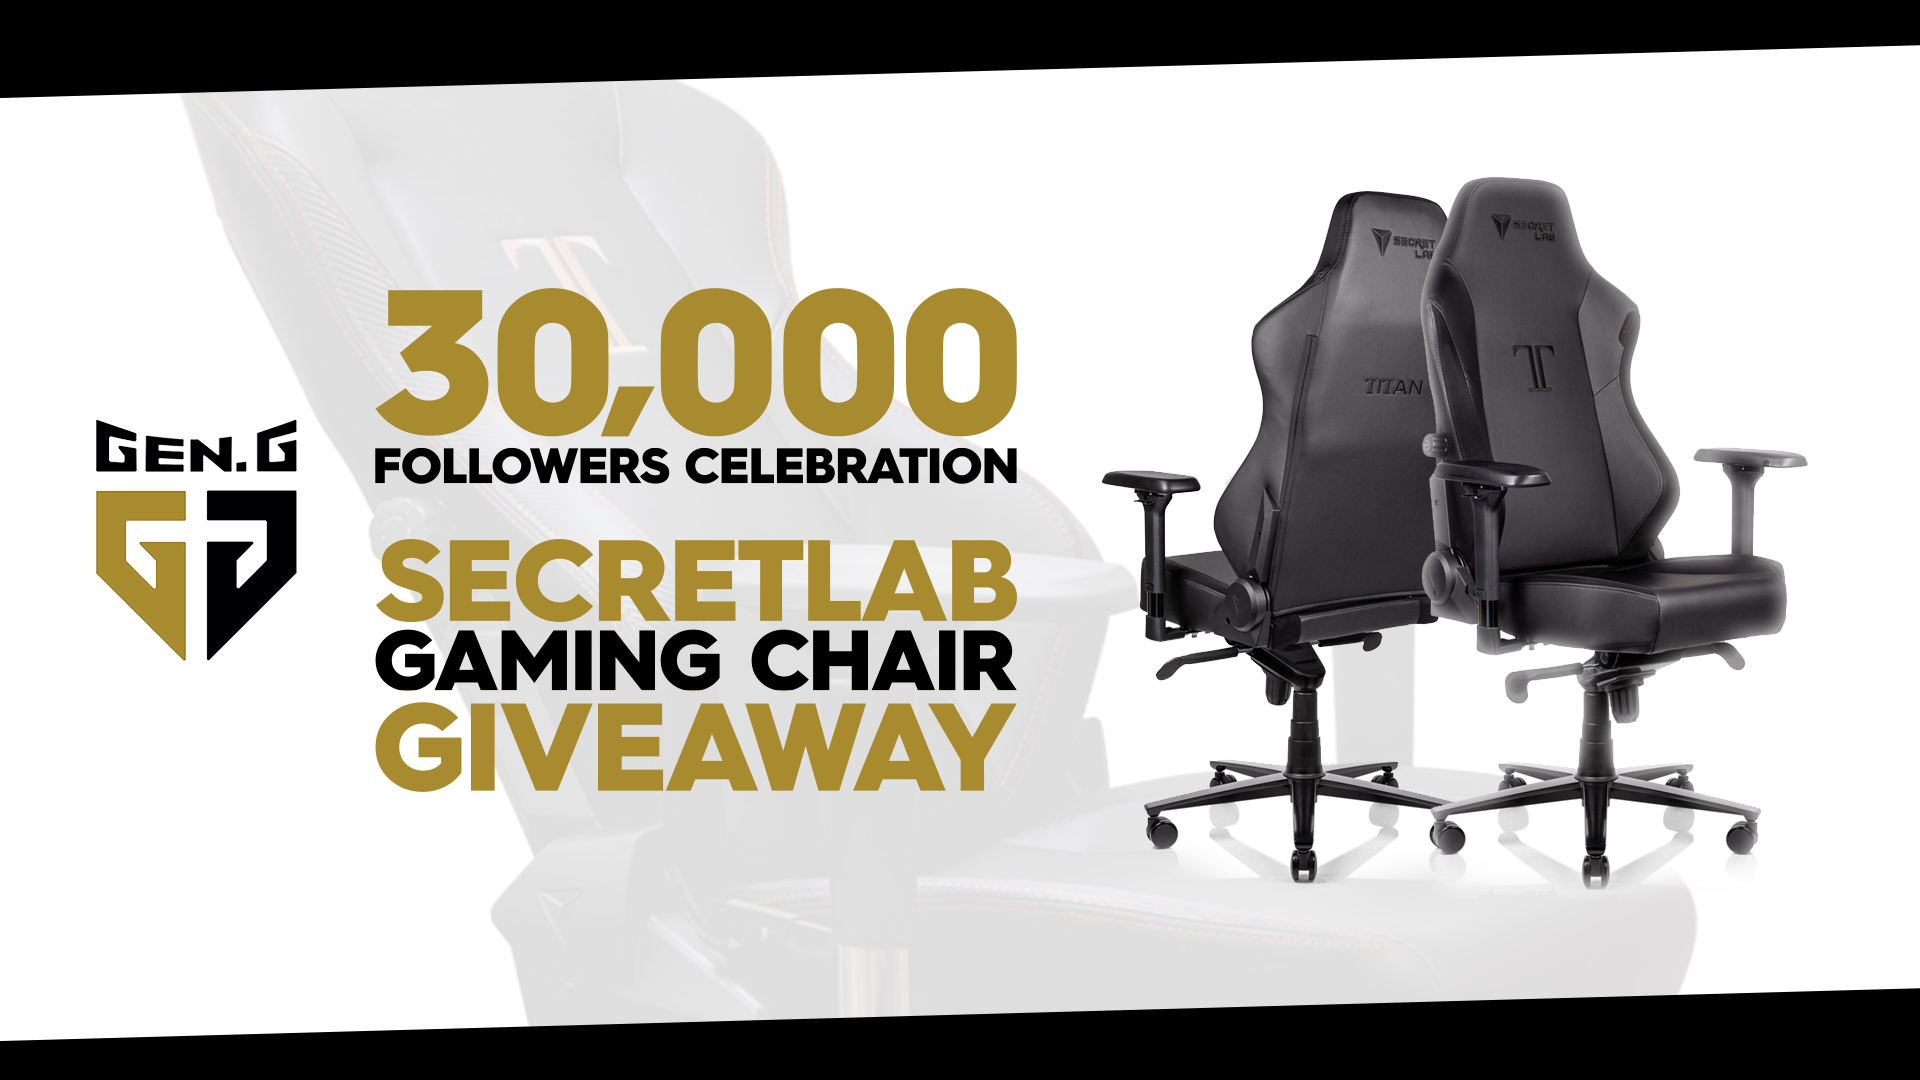 Gen.G Esports Secretlab Gaming Chair Giveaway Contests